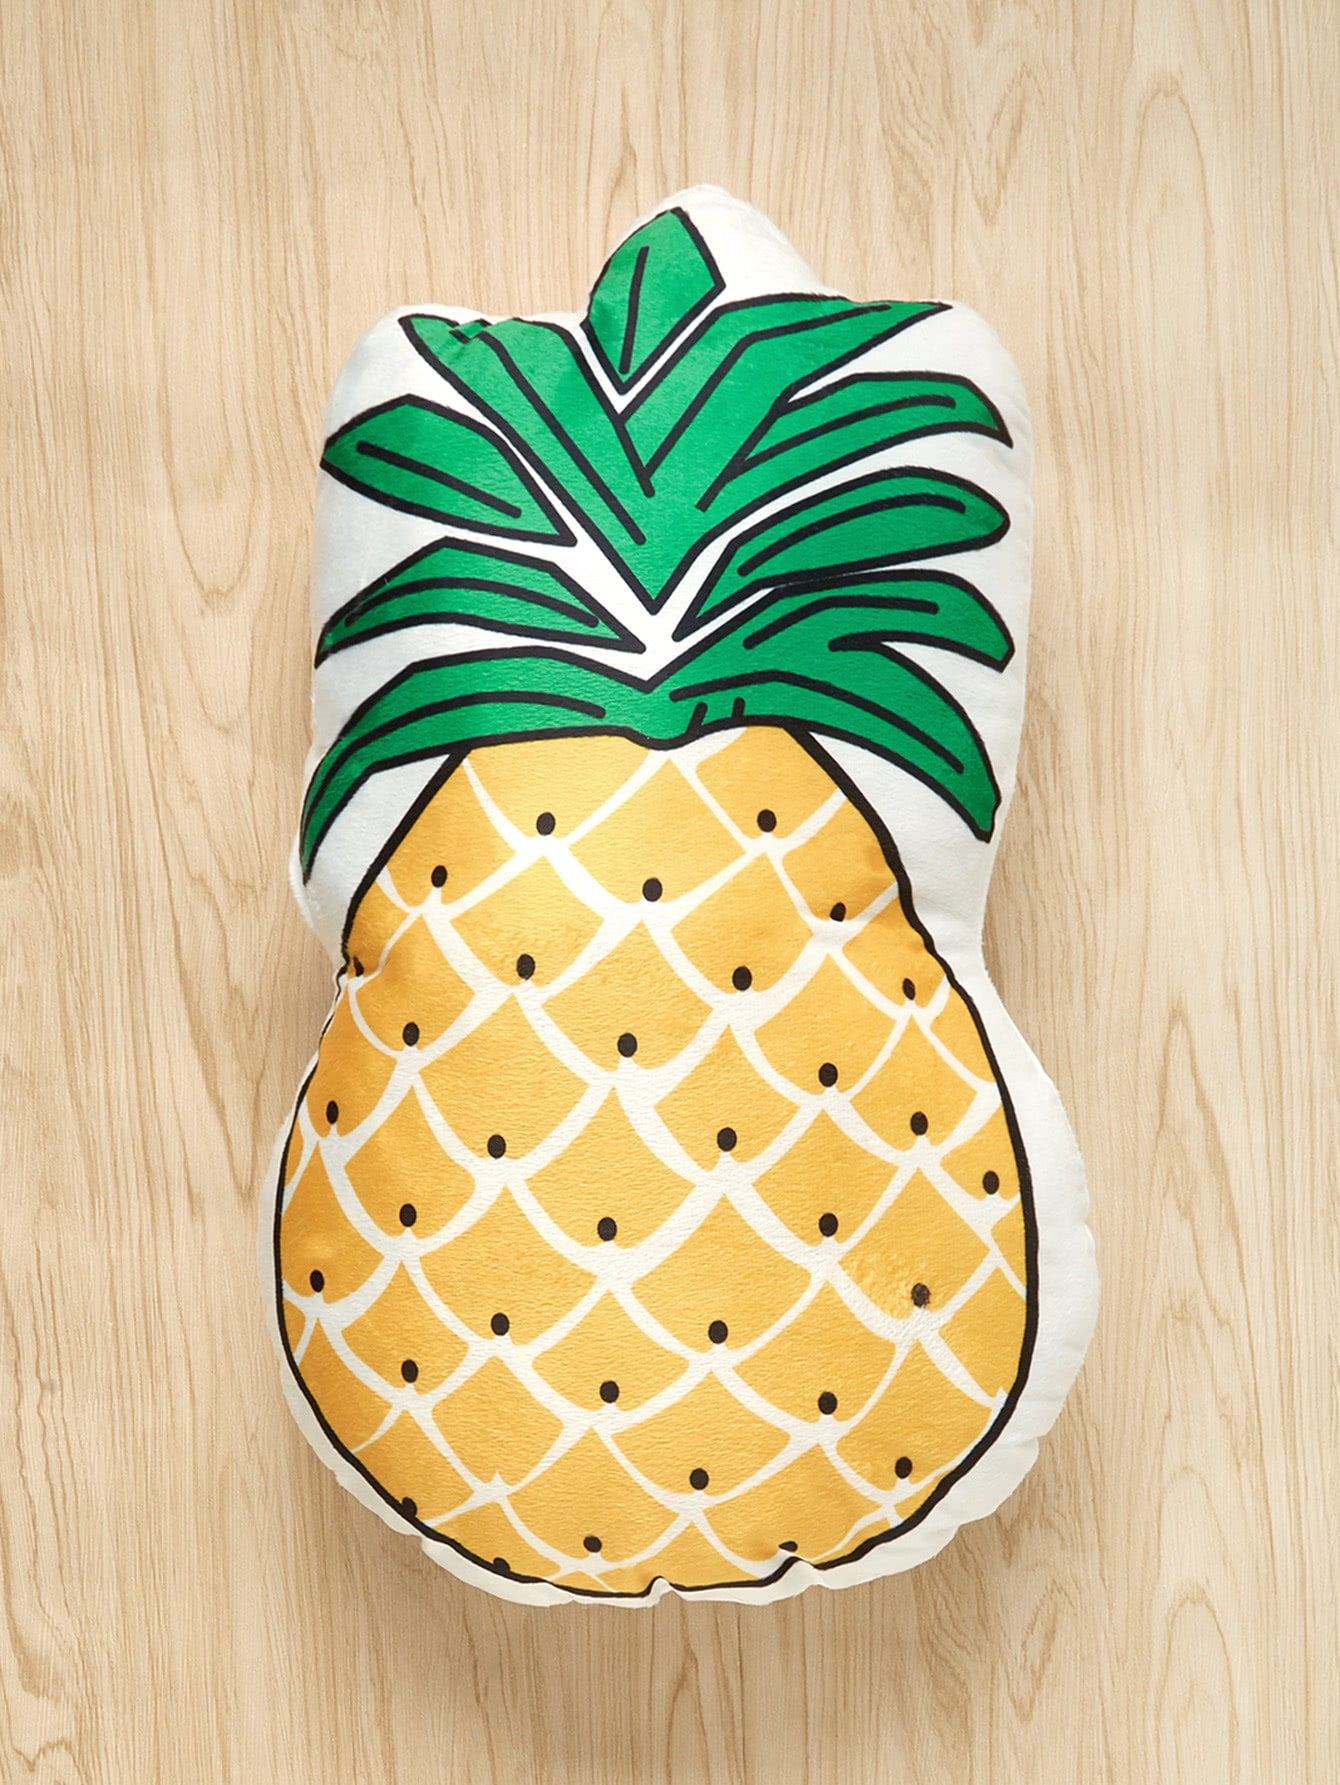 Pineapple Shaped Decorative Pillow pineapple shaped keychain